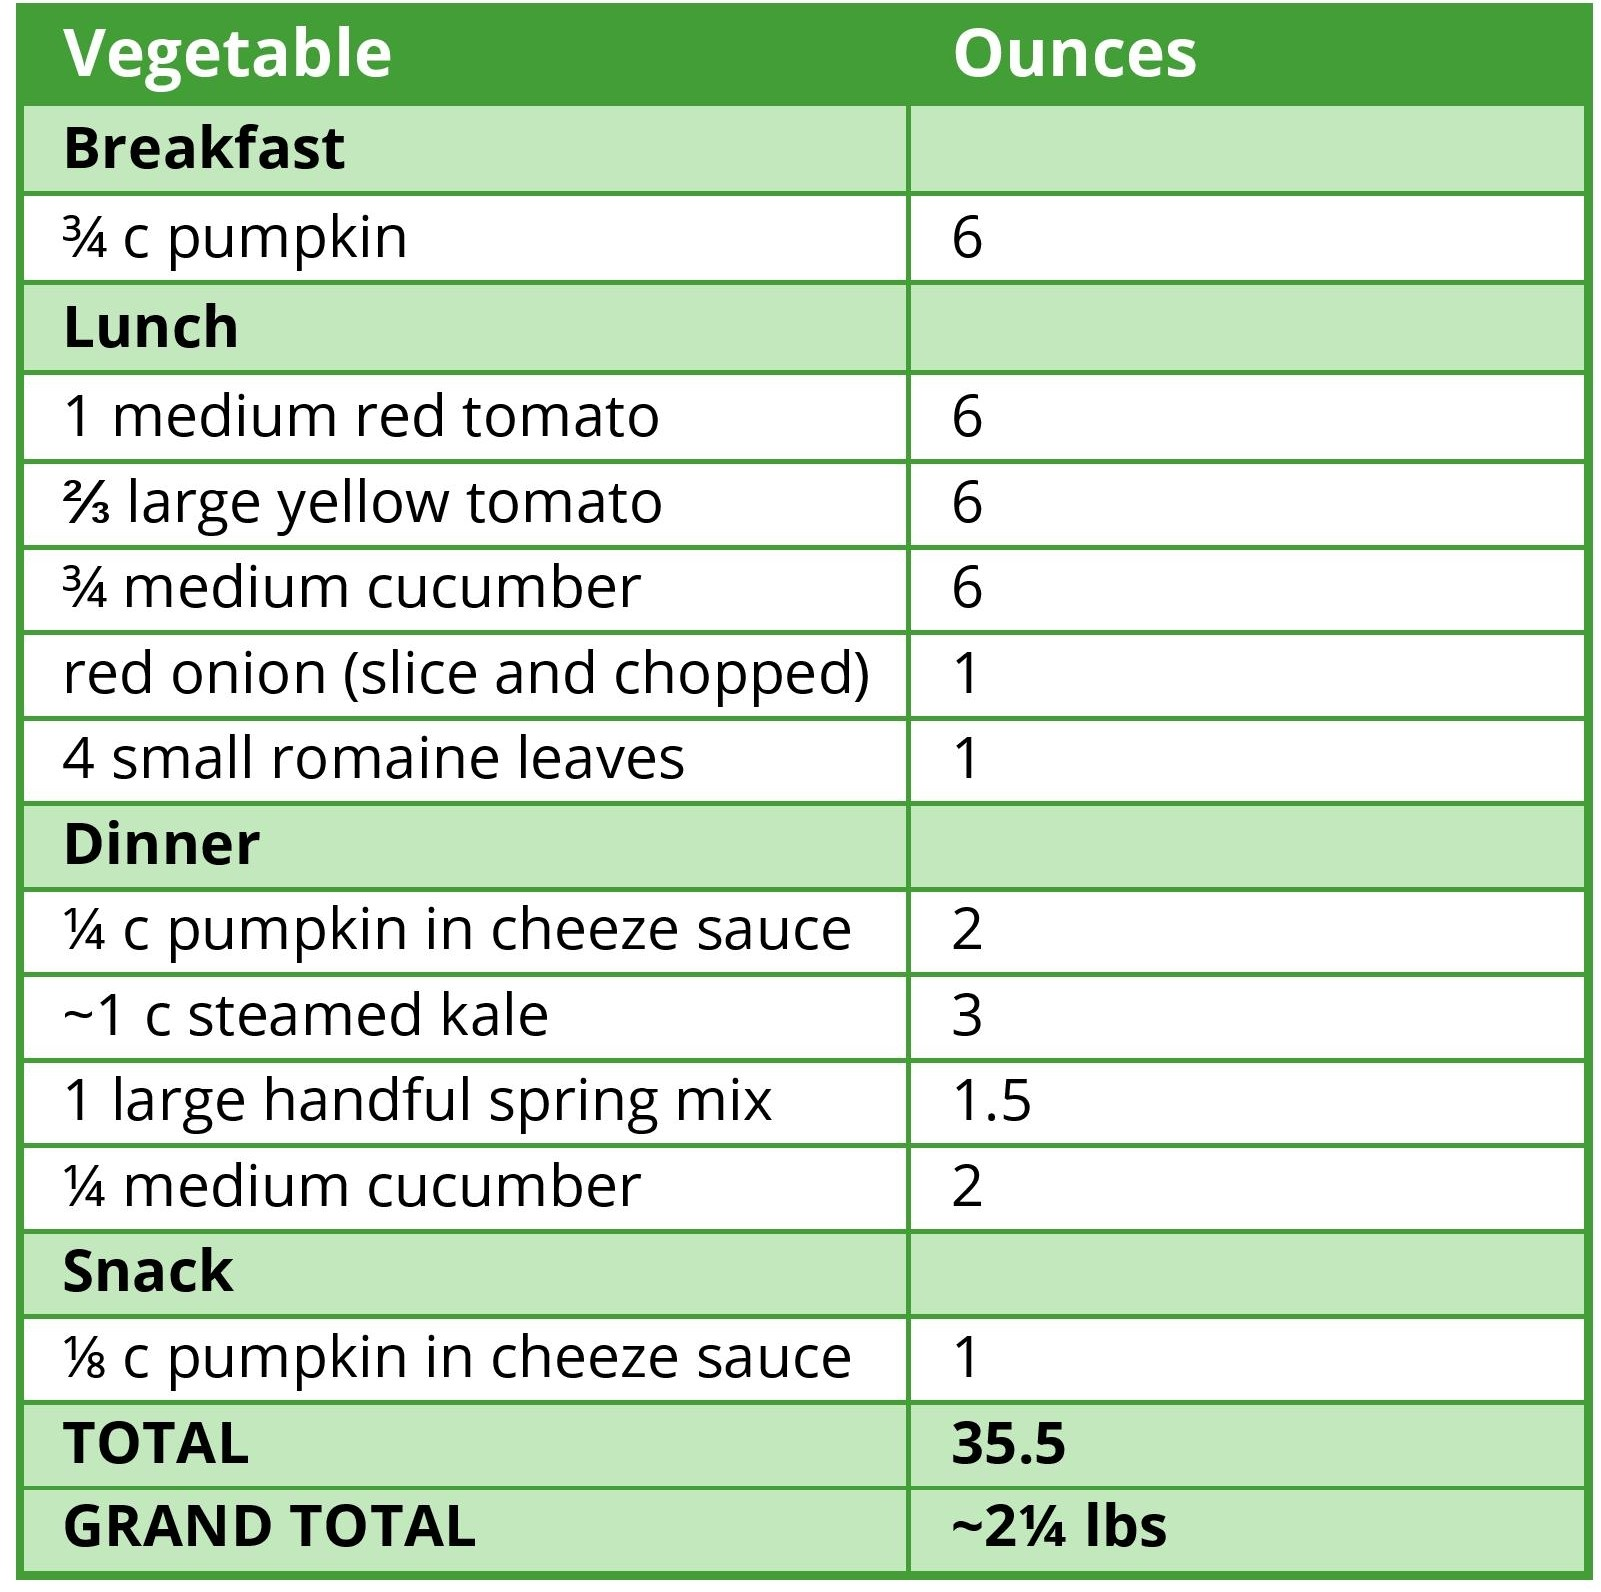 9-20-15 Vegetable Weight Table